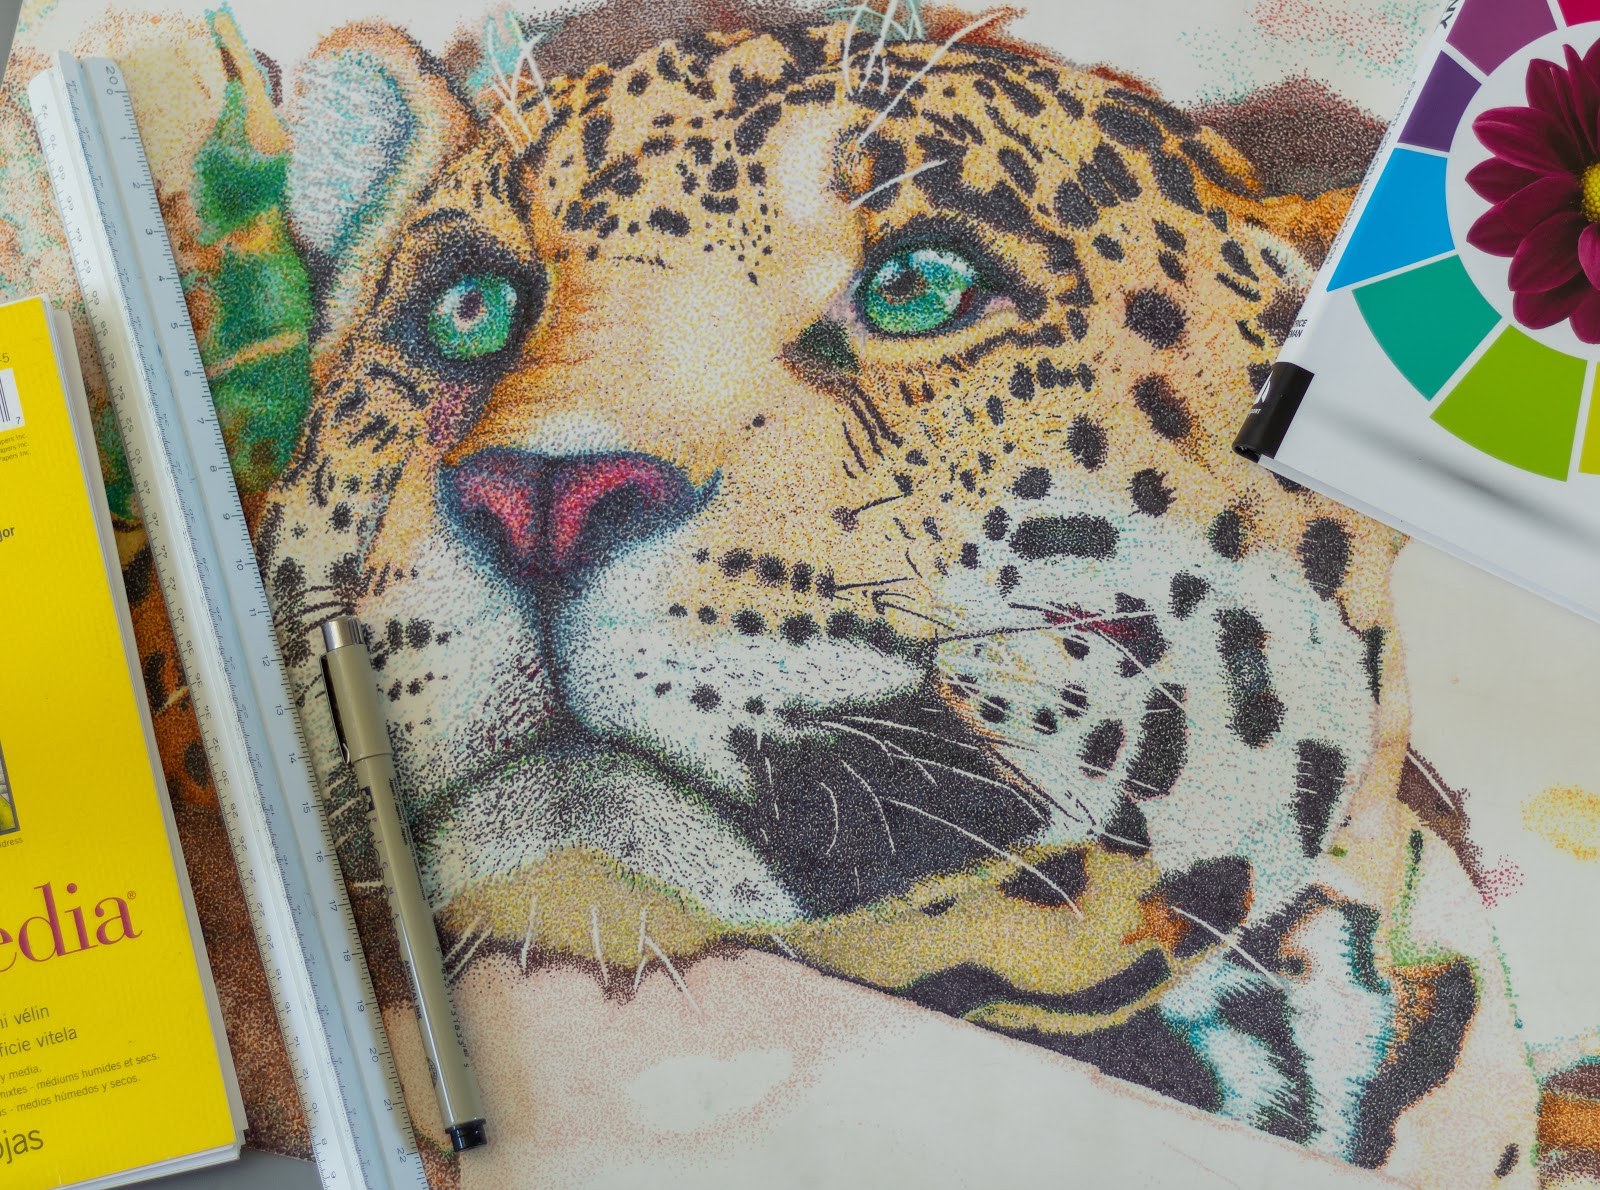 A picture of Ethan's drawing of a leopard. The spots are distinctively black, and the fur is peachy-orange. The leopard's eyes are bright green. Caption: Do something creative!